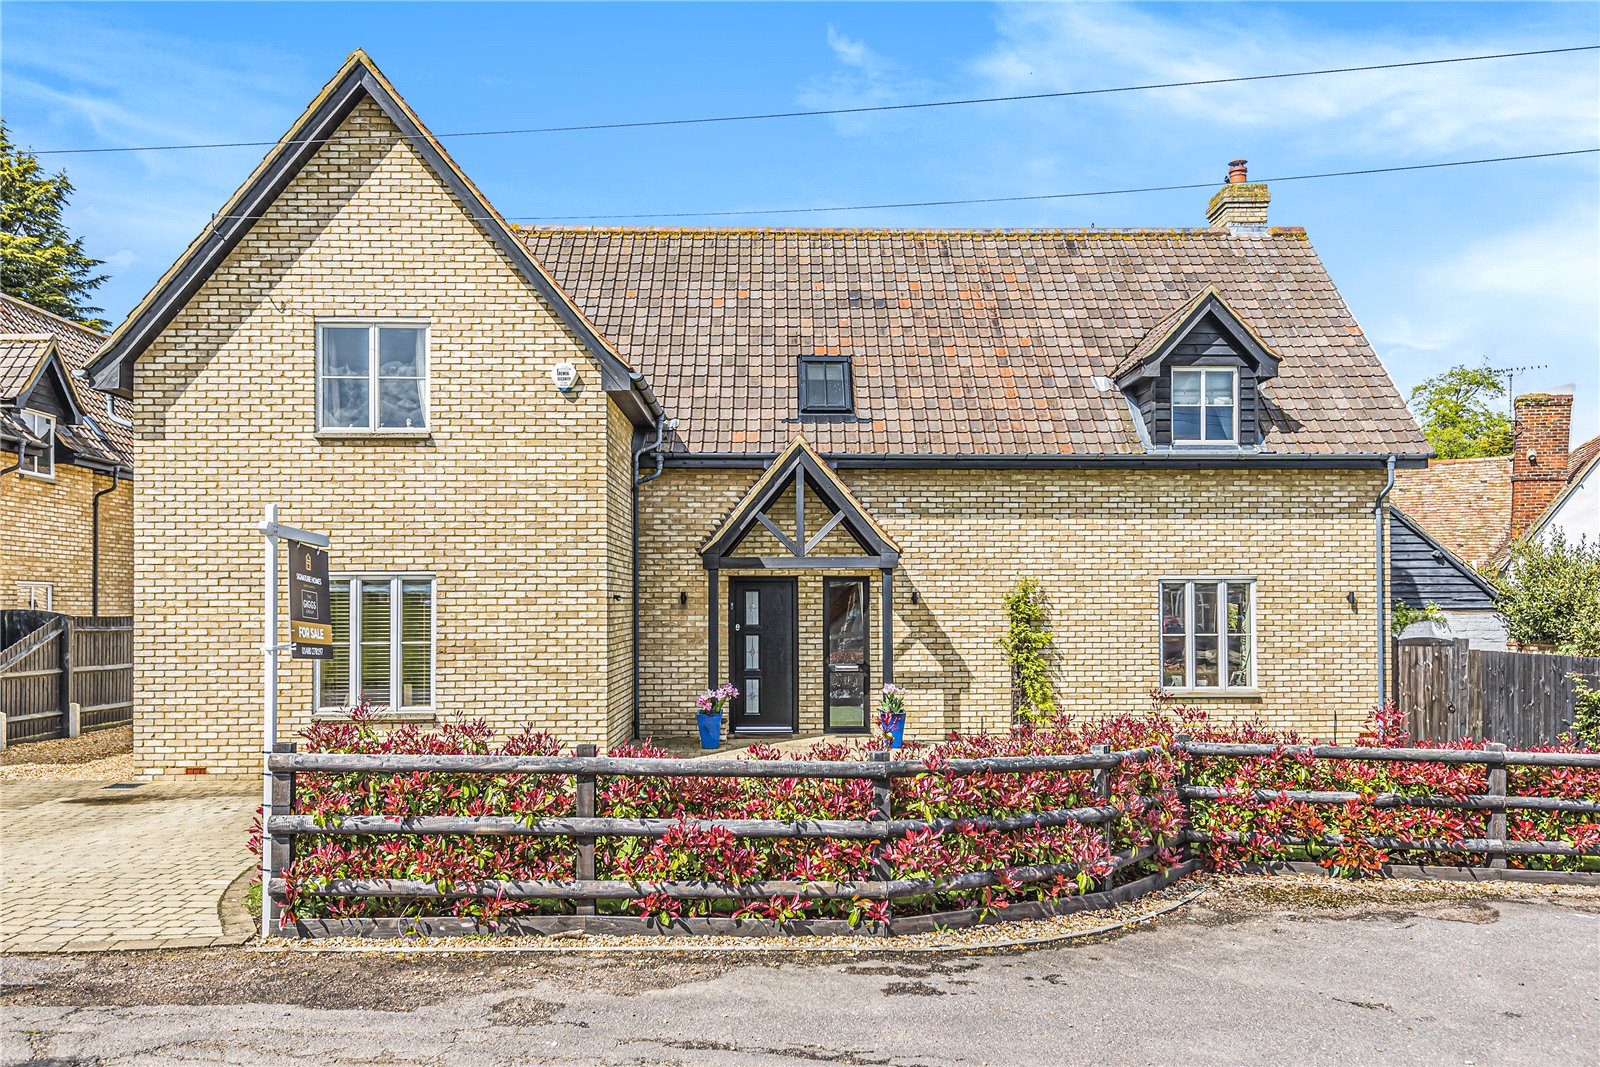 5 bed house for sale in Ford Lane, Roxton 0